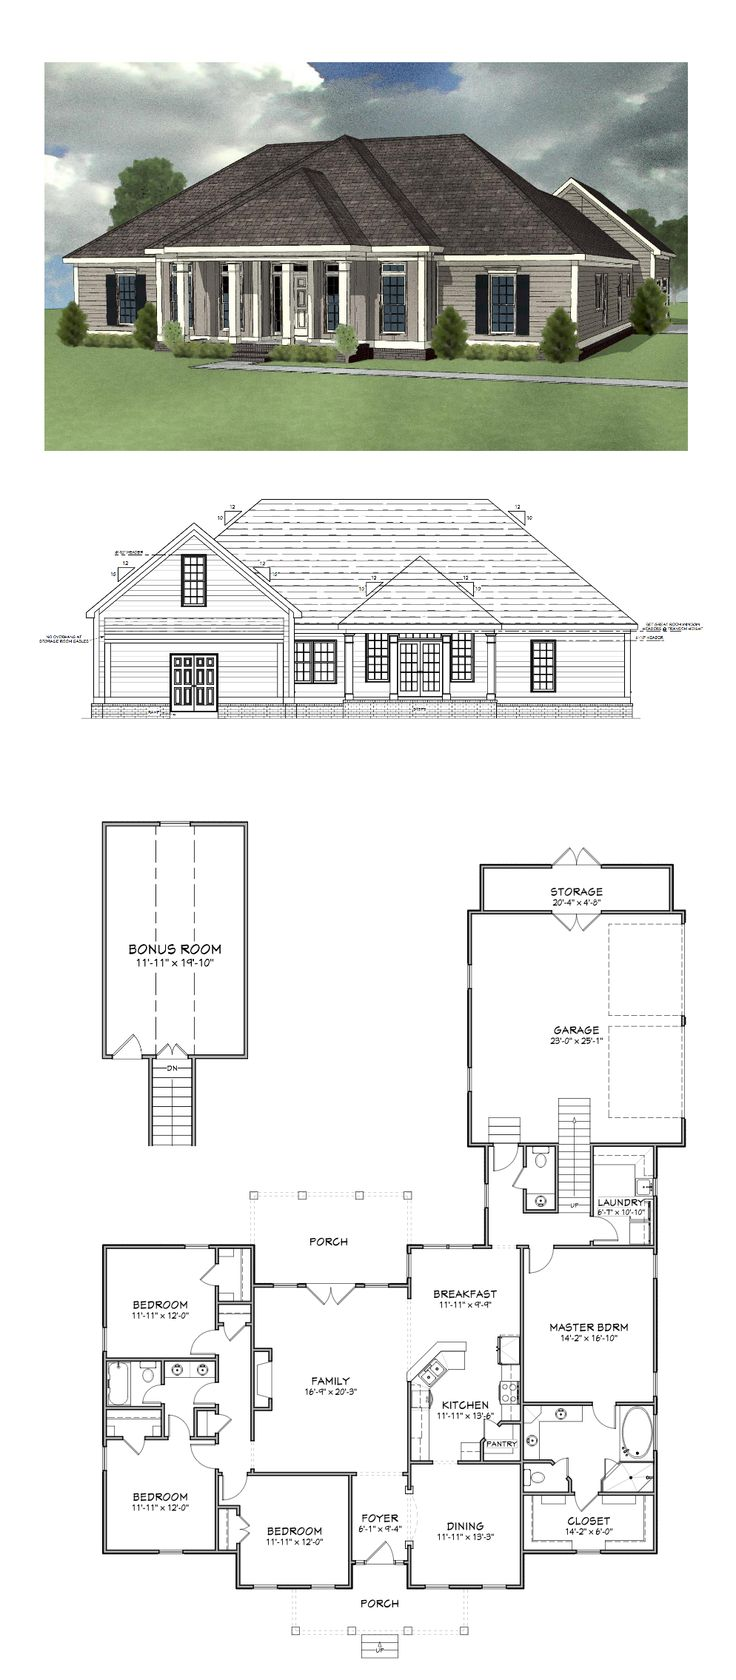 Plan sc 2270 770 4 bedroom 2 5 bath home with 2270 for 4 bedroom house plans with bonus room